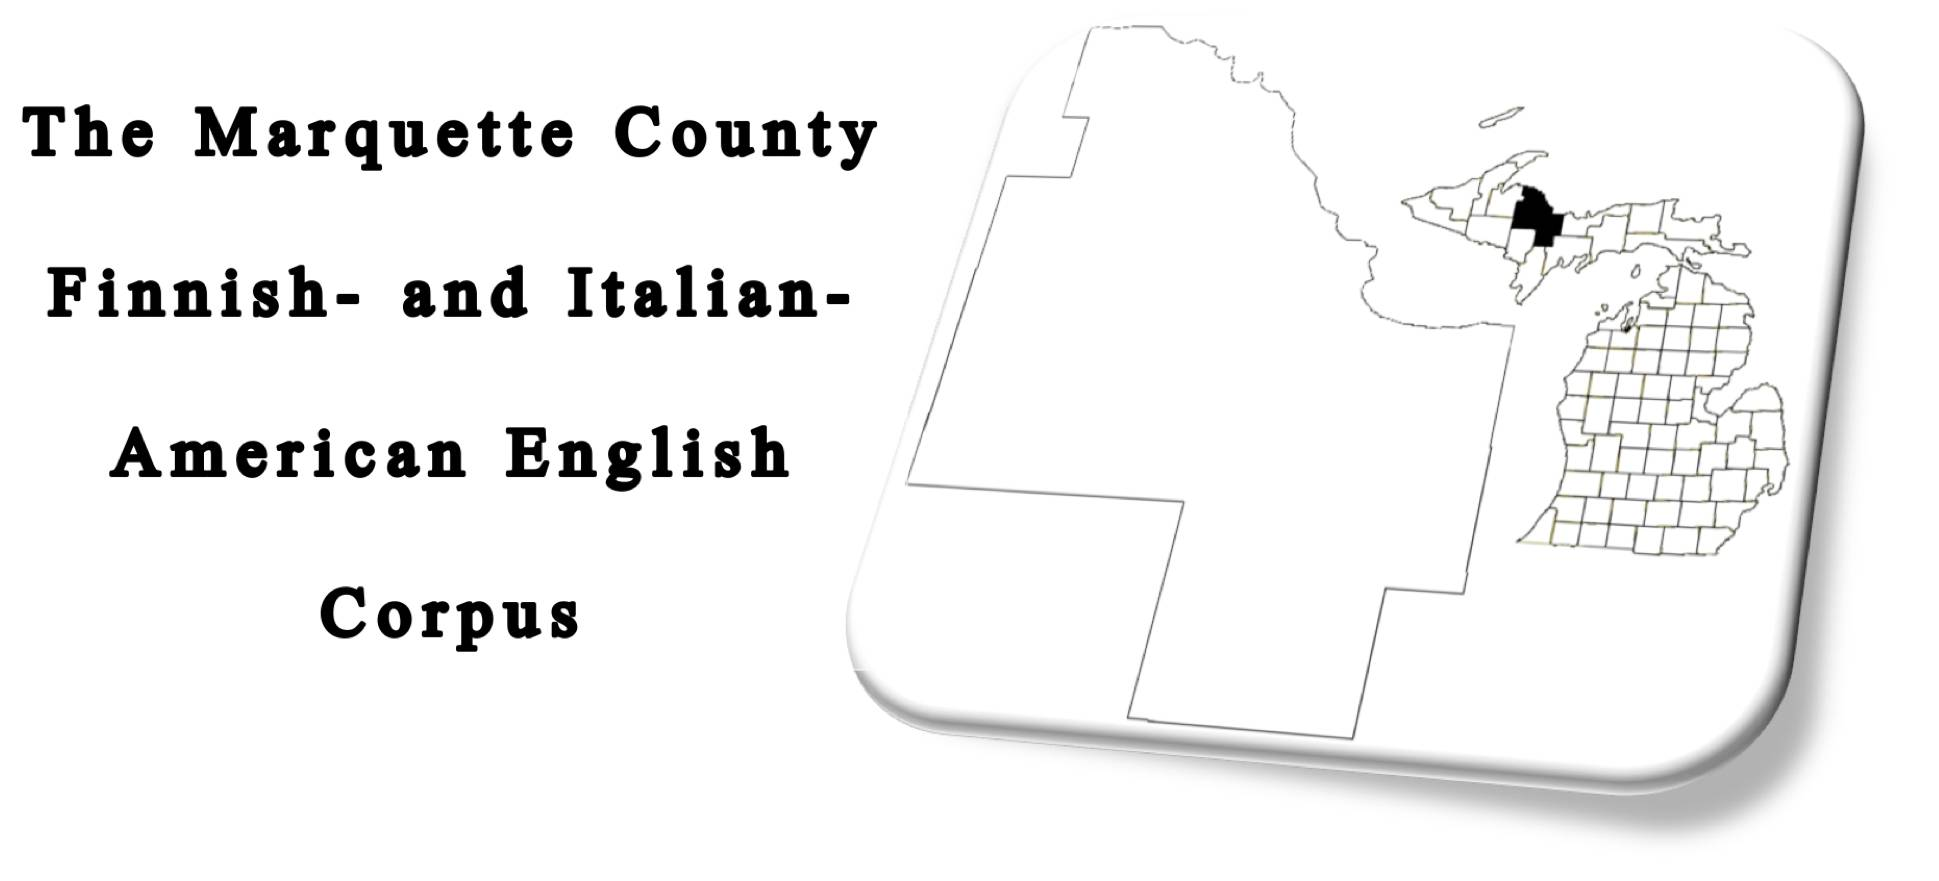 The Marquette County Finnish- and Italian-American English Corpus